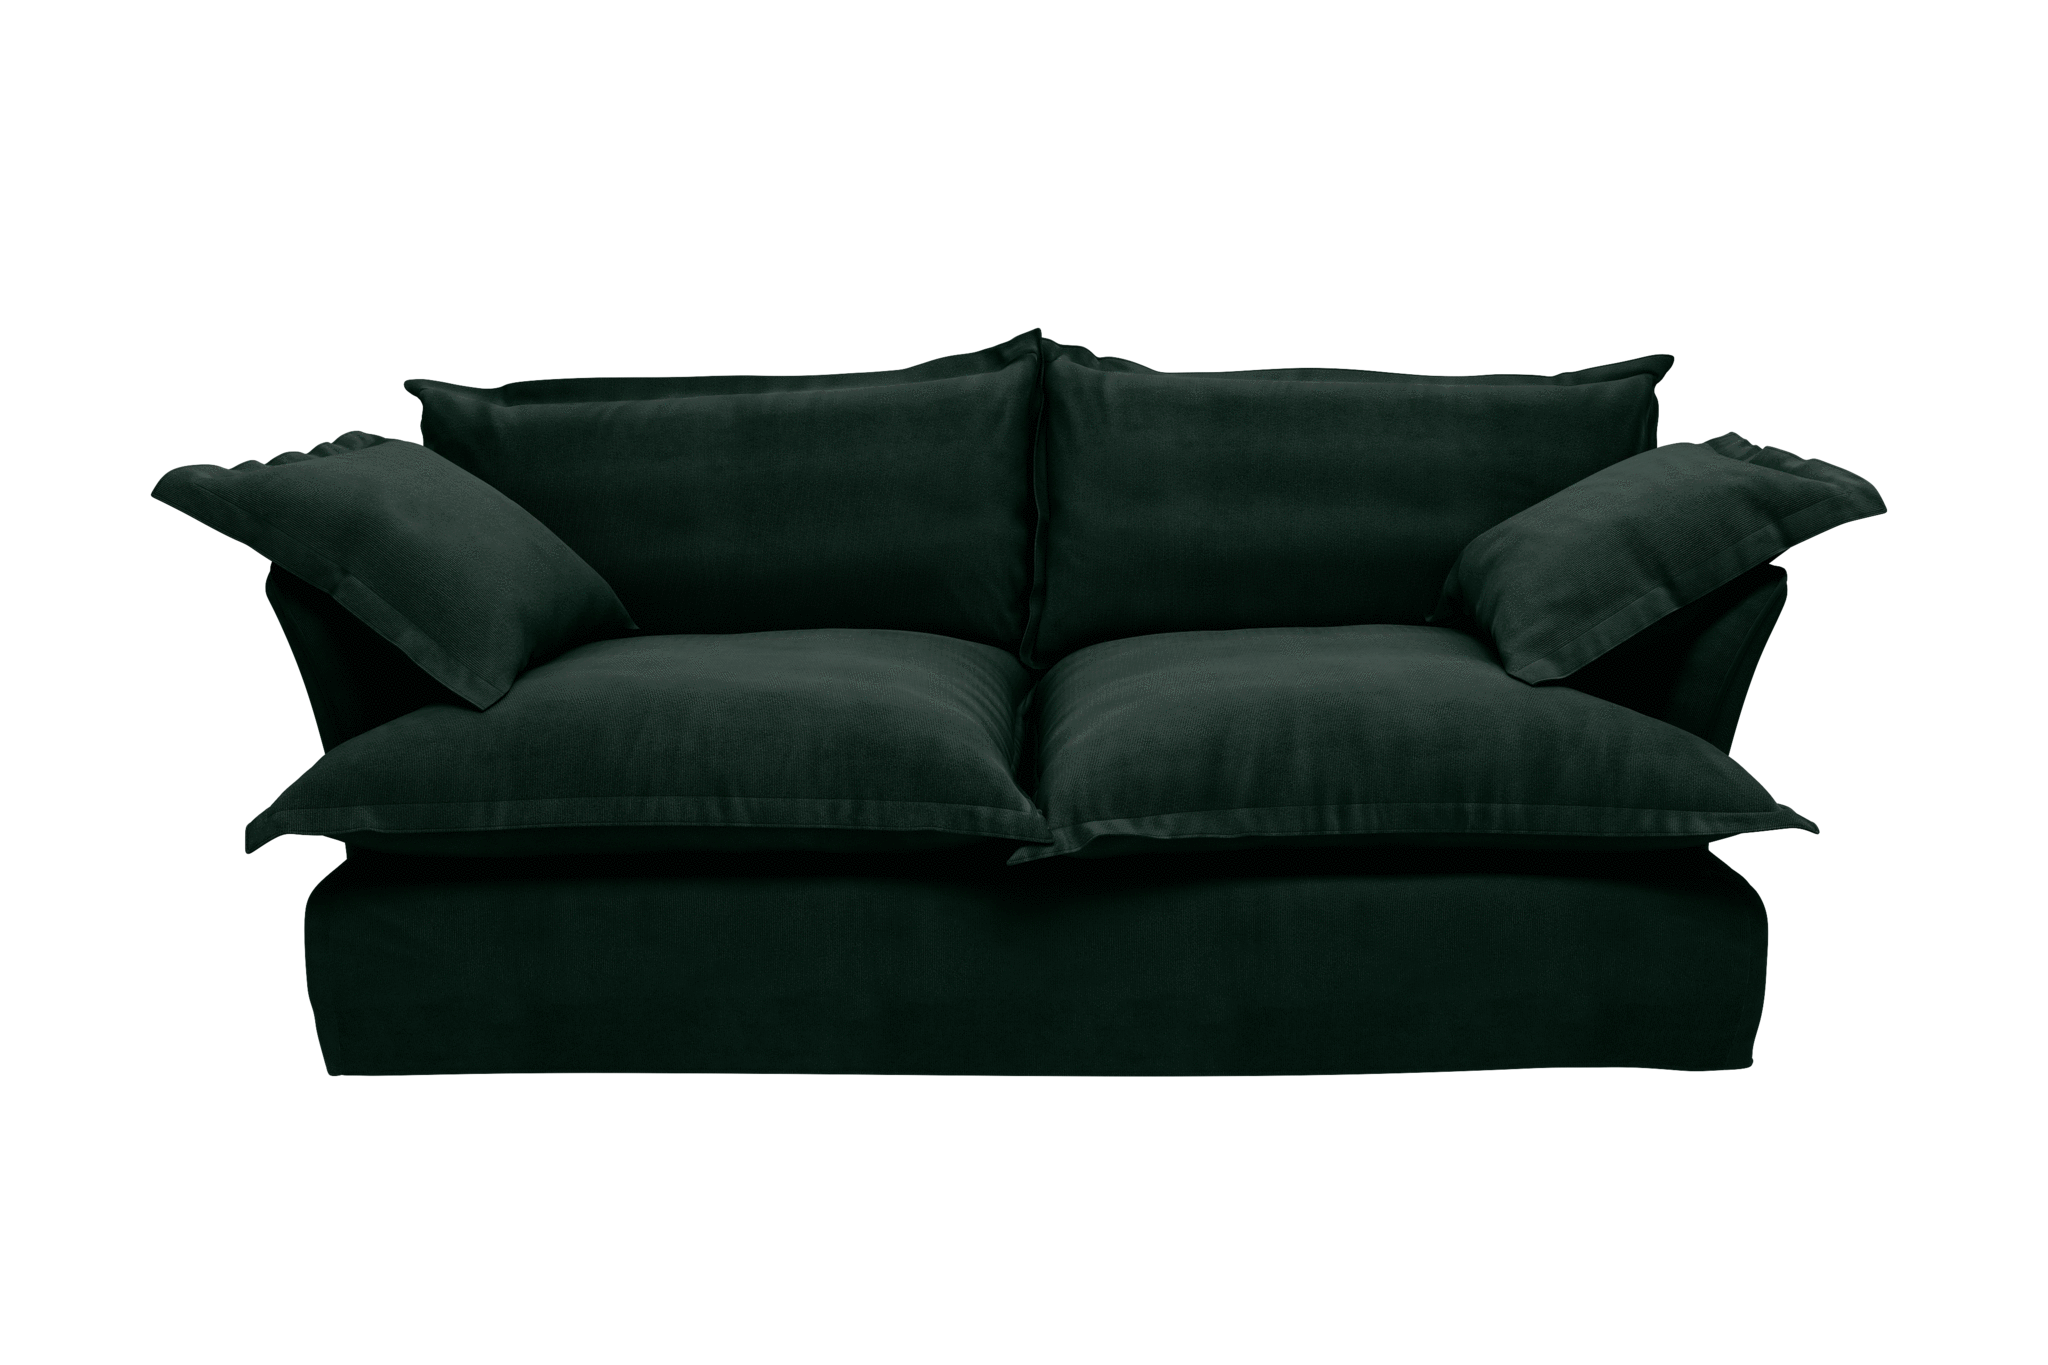 Couch back view png. Sofas maker son corduroy